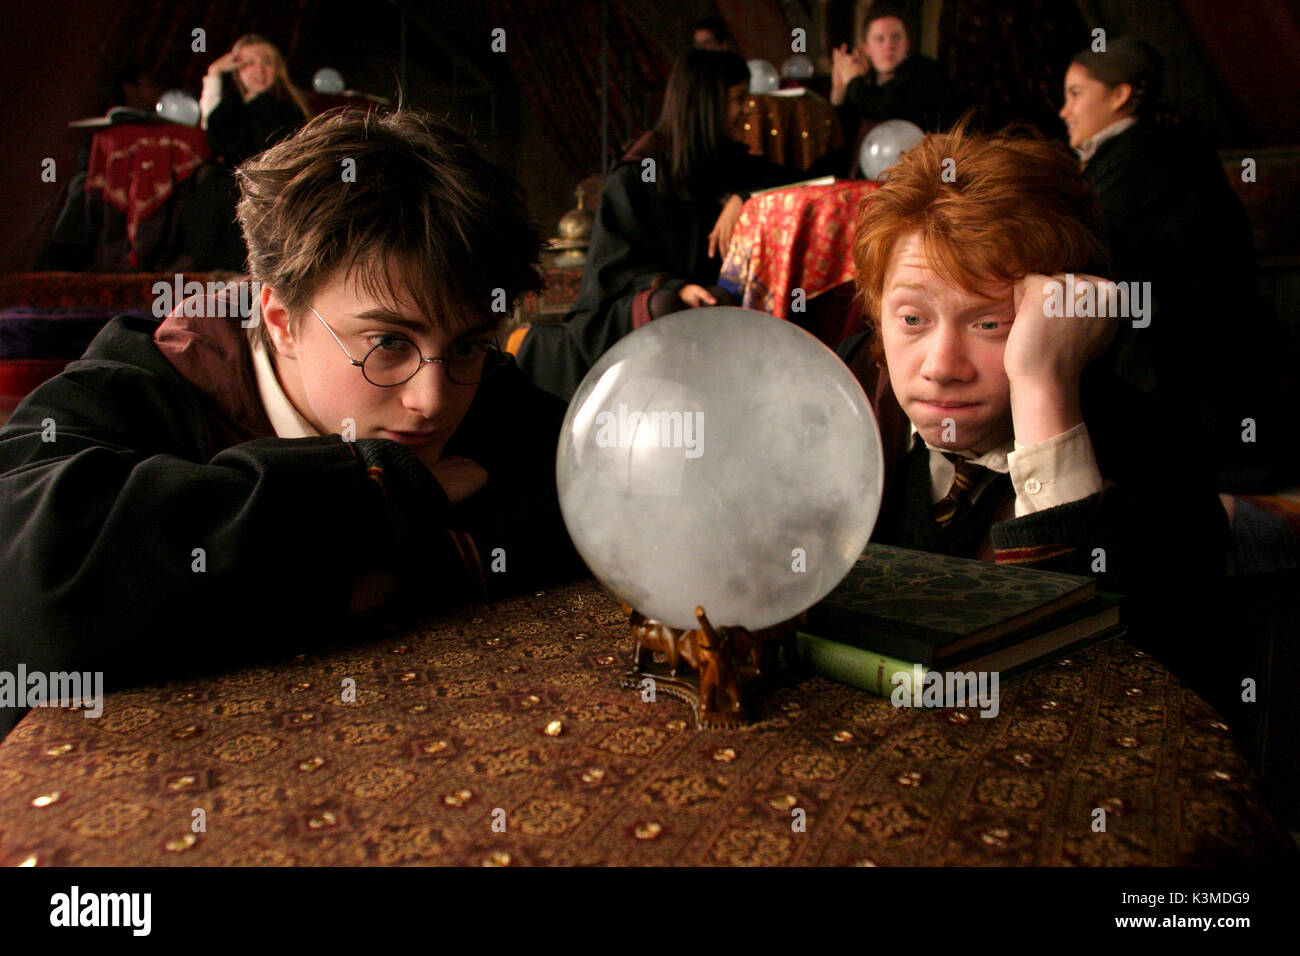 HARRY POTTER AND THE PRISONER OF AZKABAN [BR / US 2004] [L-R] DANIEL RADCLIFFE as Harry Potter, RUPERT GRINT as Ron Weasley     Date: 2004 - Stock Image